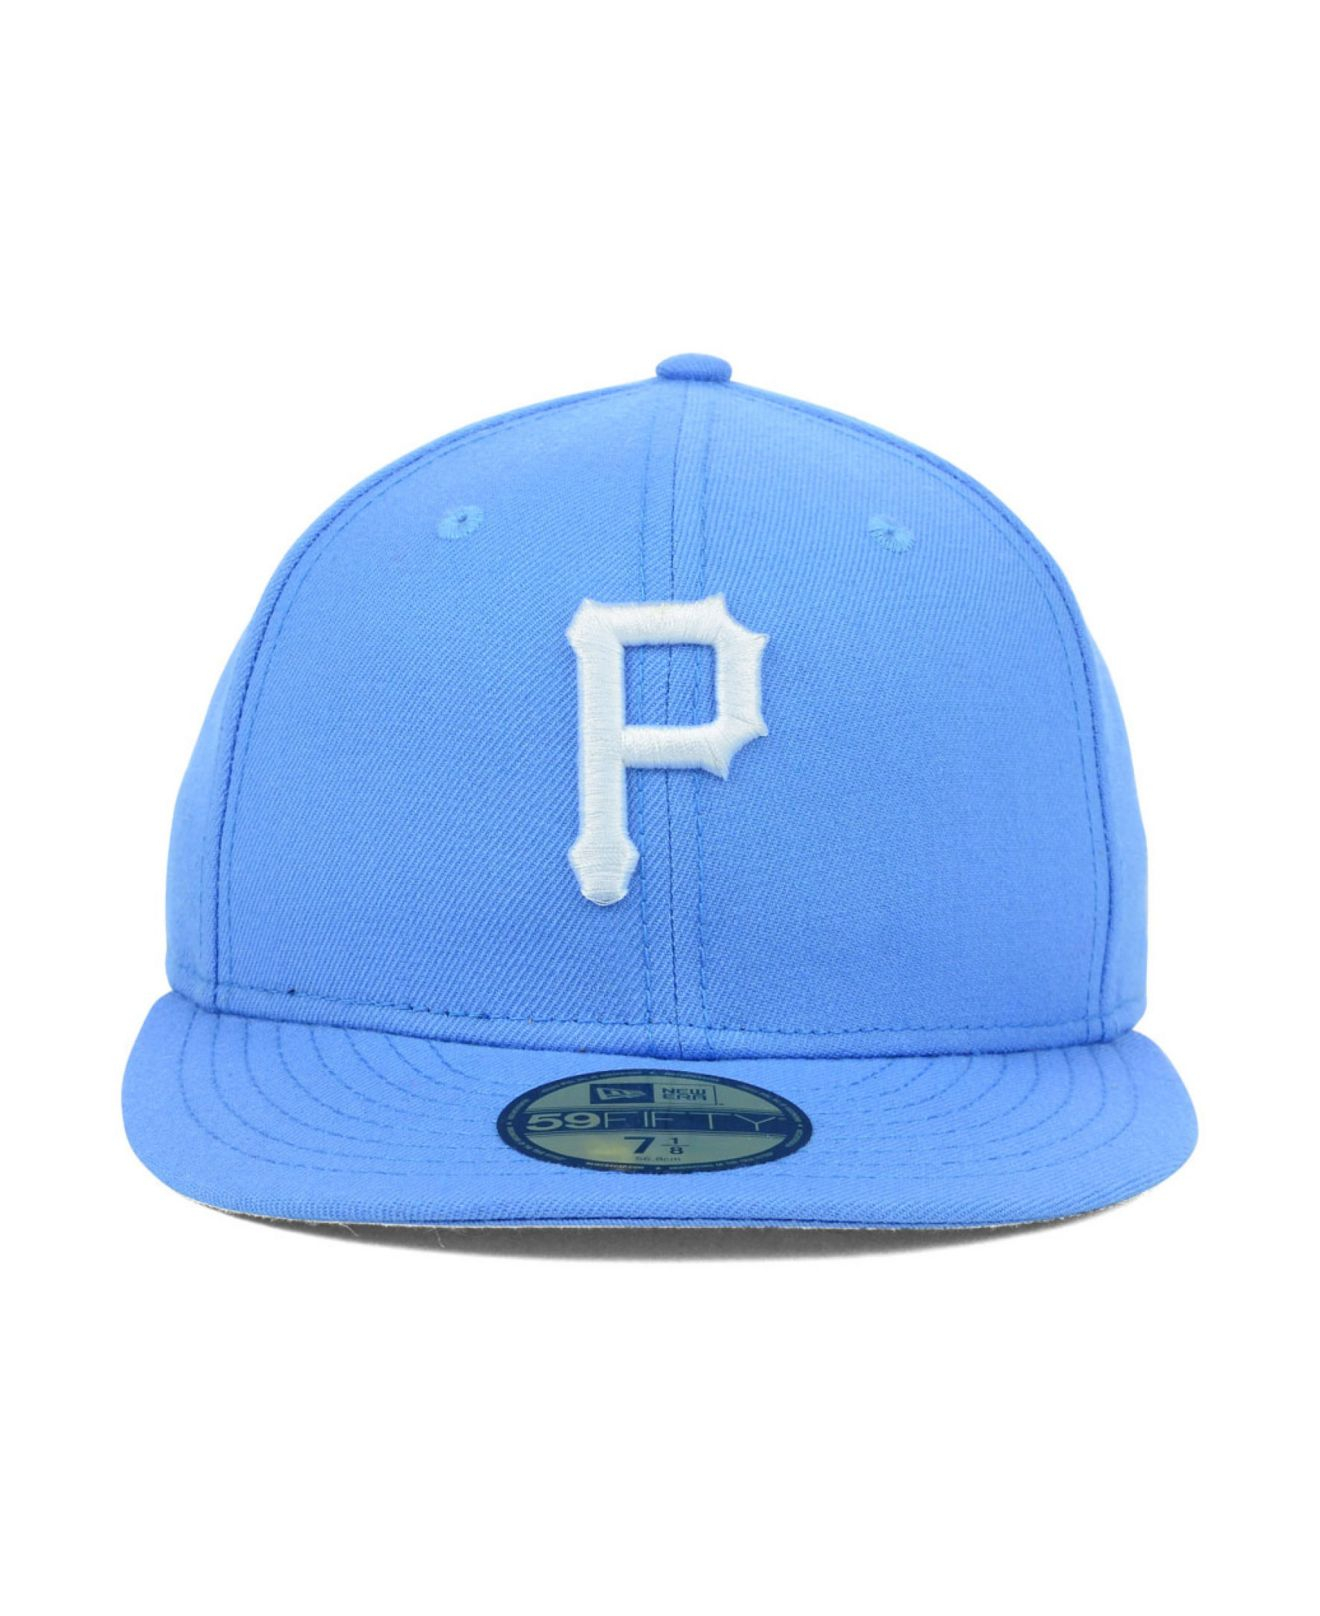 best website 65e0c 3f857 ... free shipping lyst ktz pittsburgh pirates c dub 59fifty cap in blue for  men 38fa6 55242